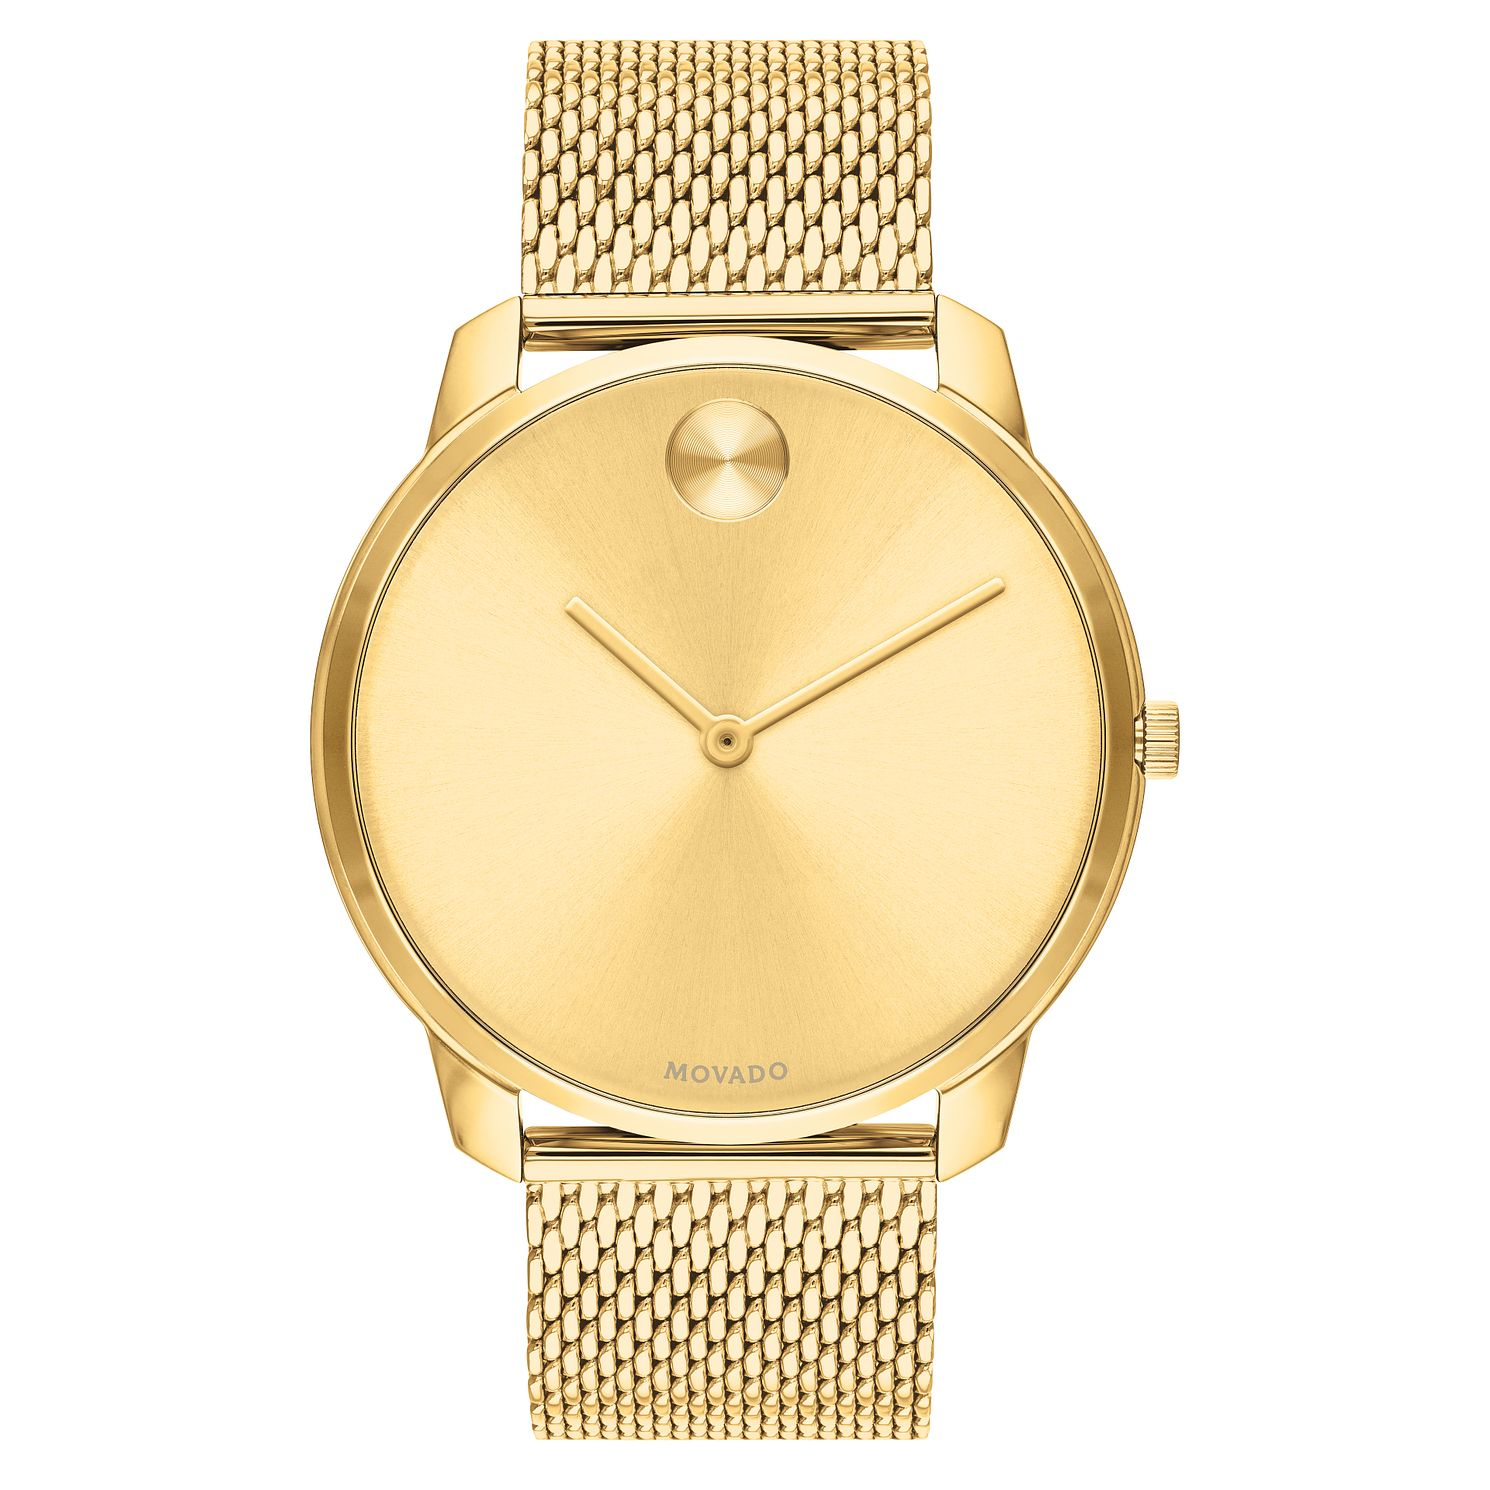 Movado Bold Men's Yellow Gold Tone Mesh Bracelet Watch - Product number 5912350